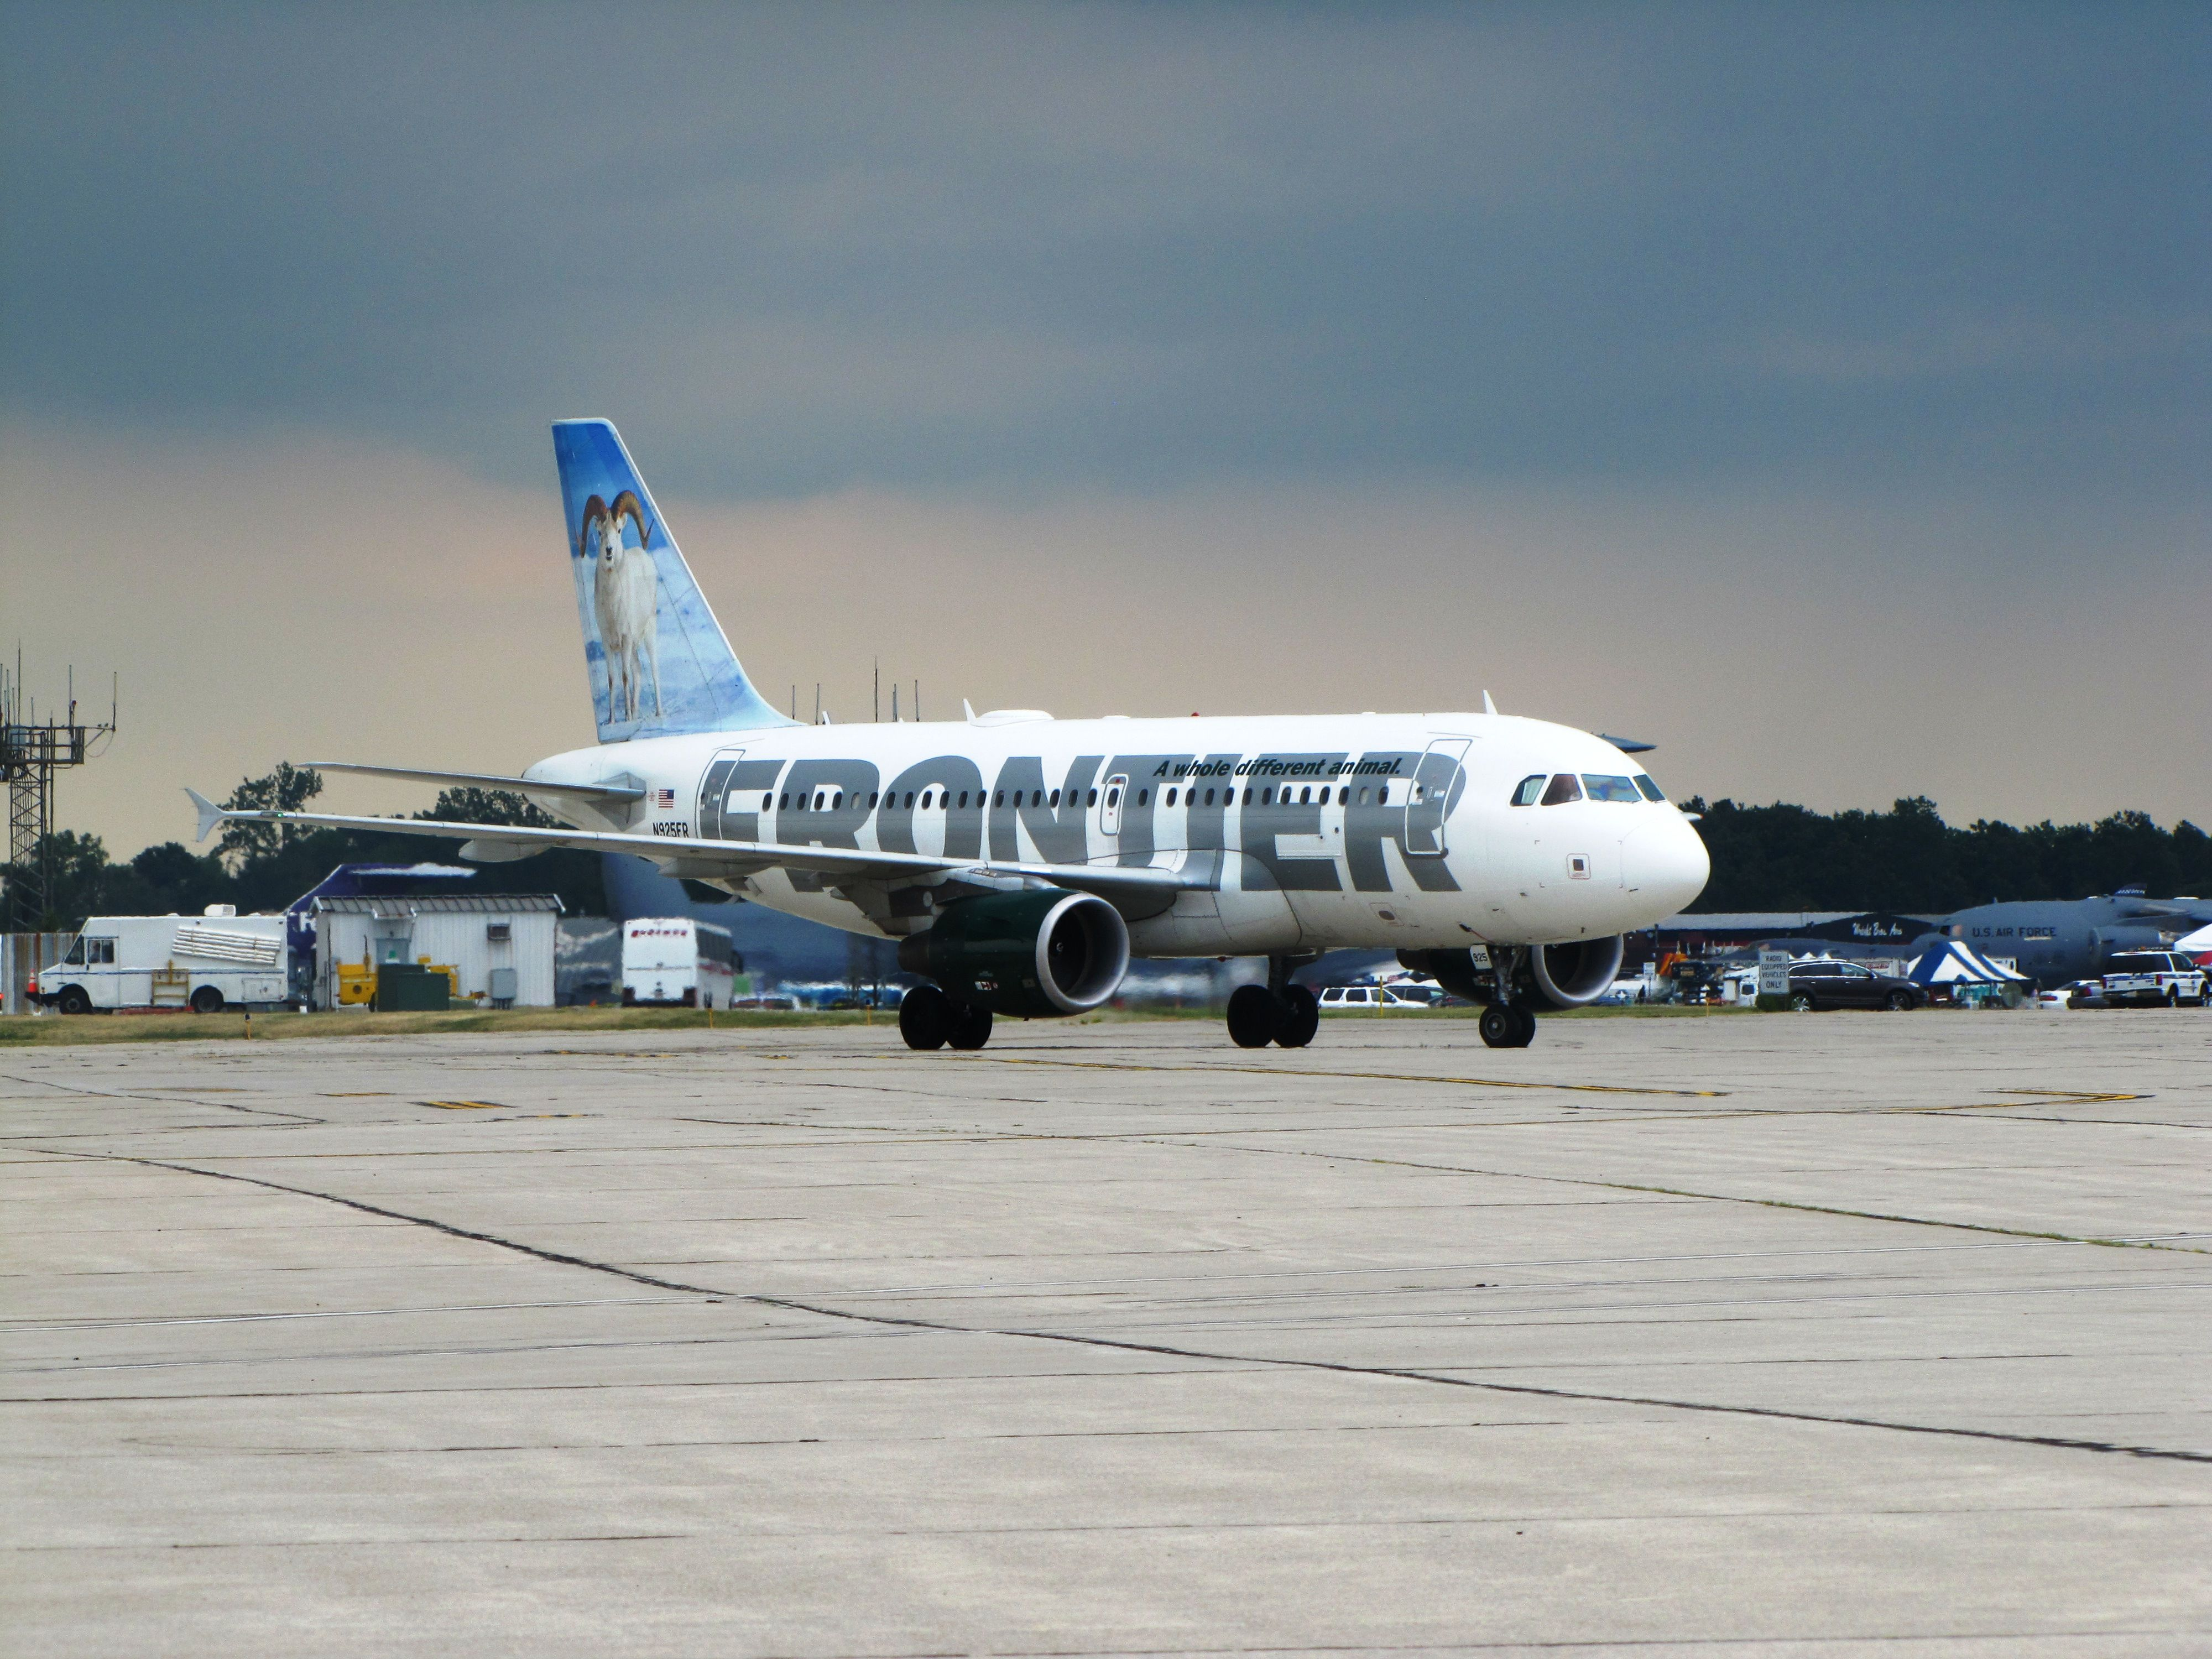 Frontier Airlines Airbus A319111 N925FR 'Dale the Alaska